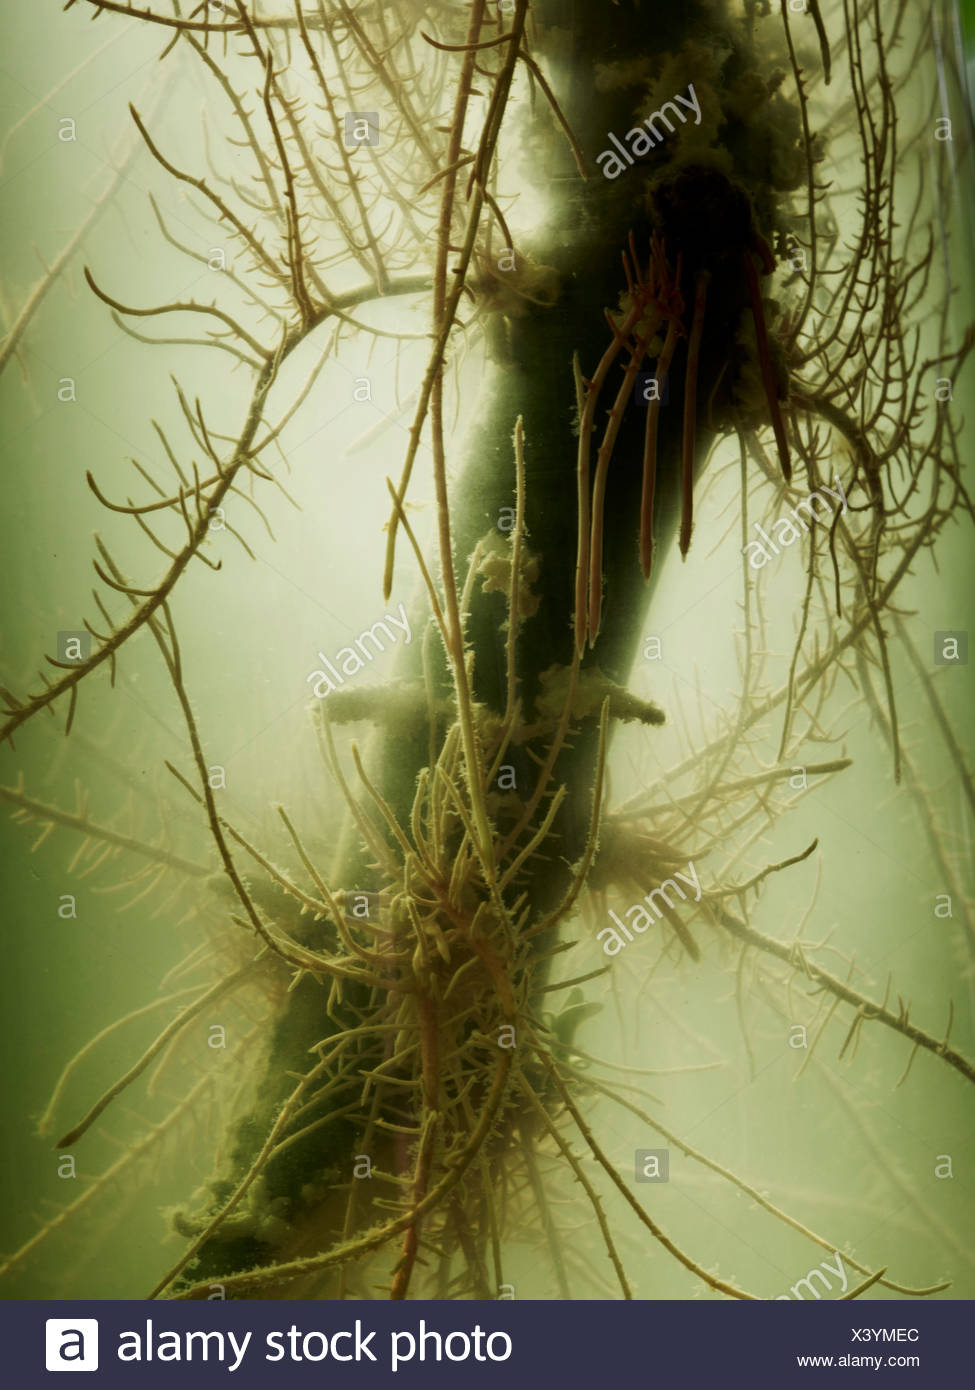 Roots in nutrient solution and yellowish liquid - Stock Image